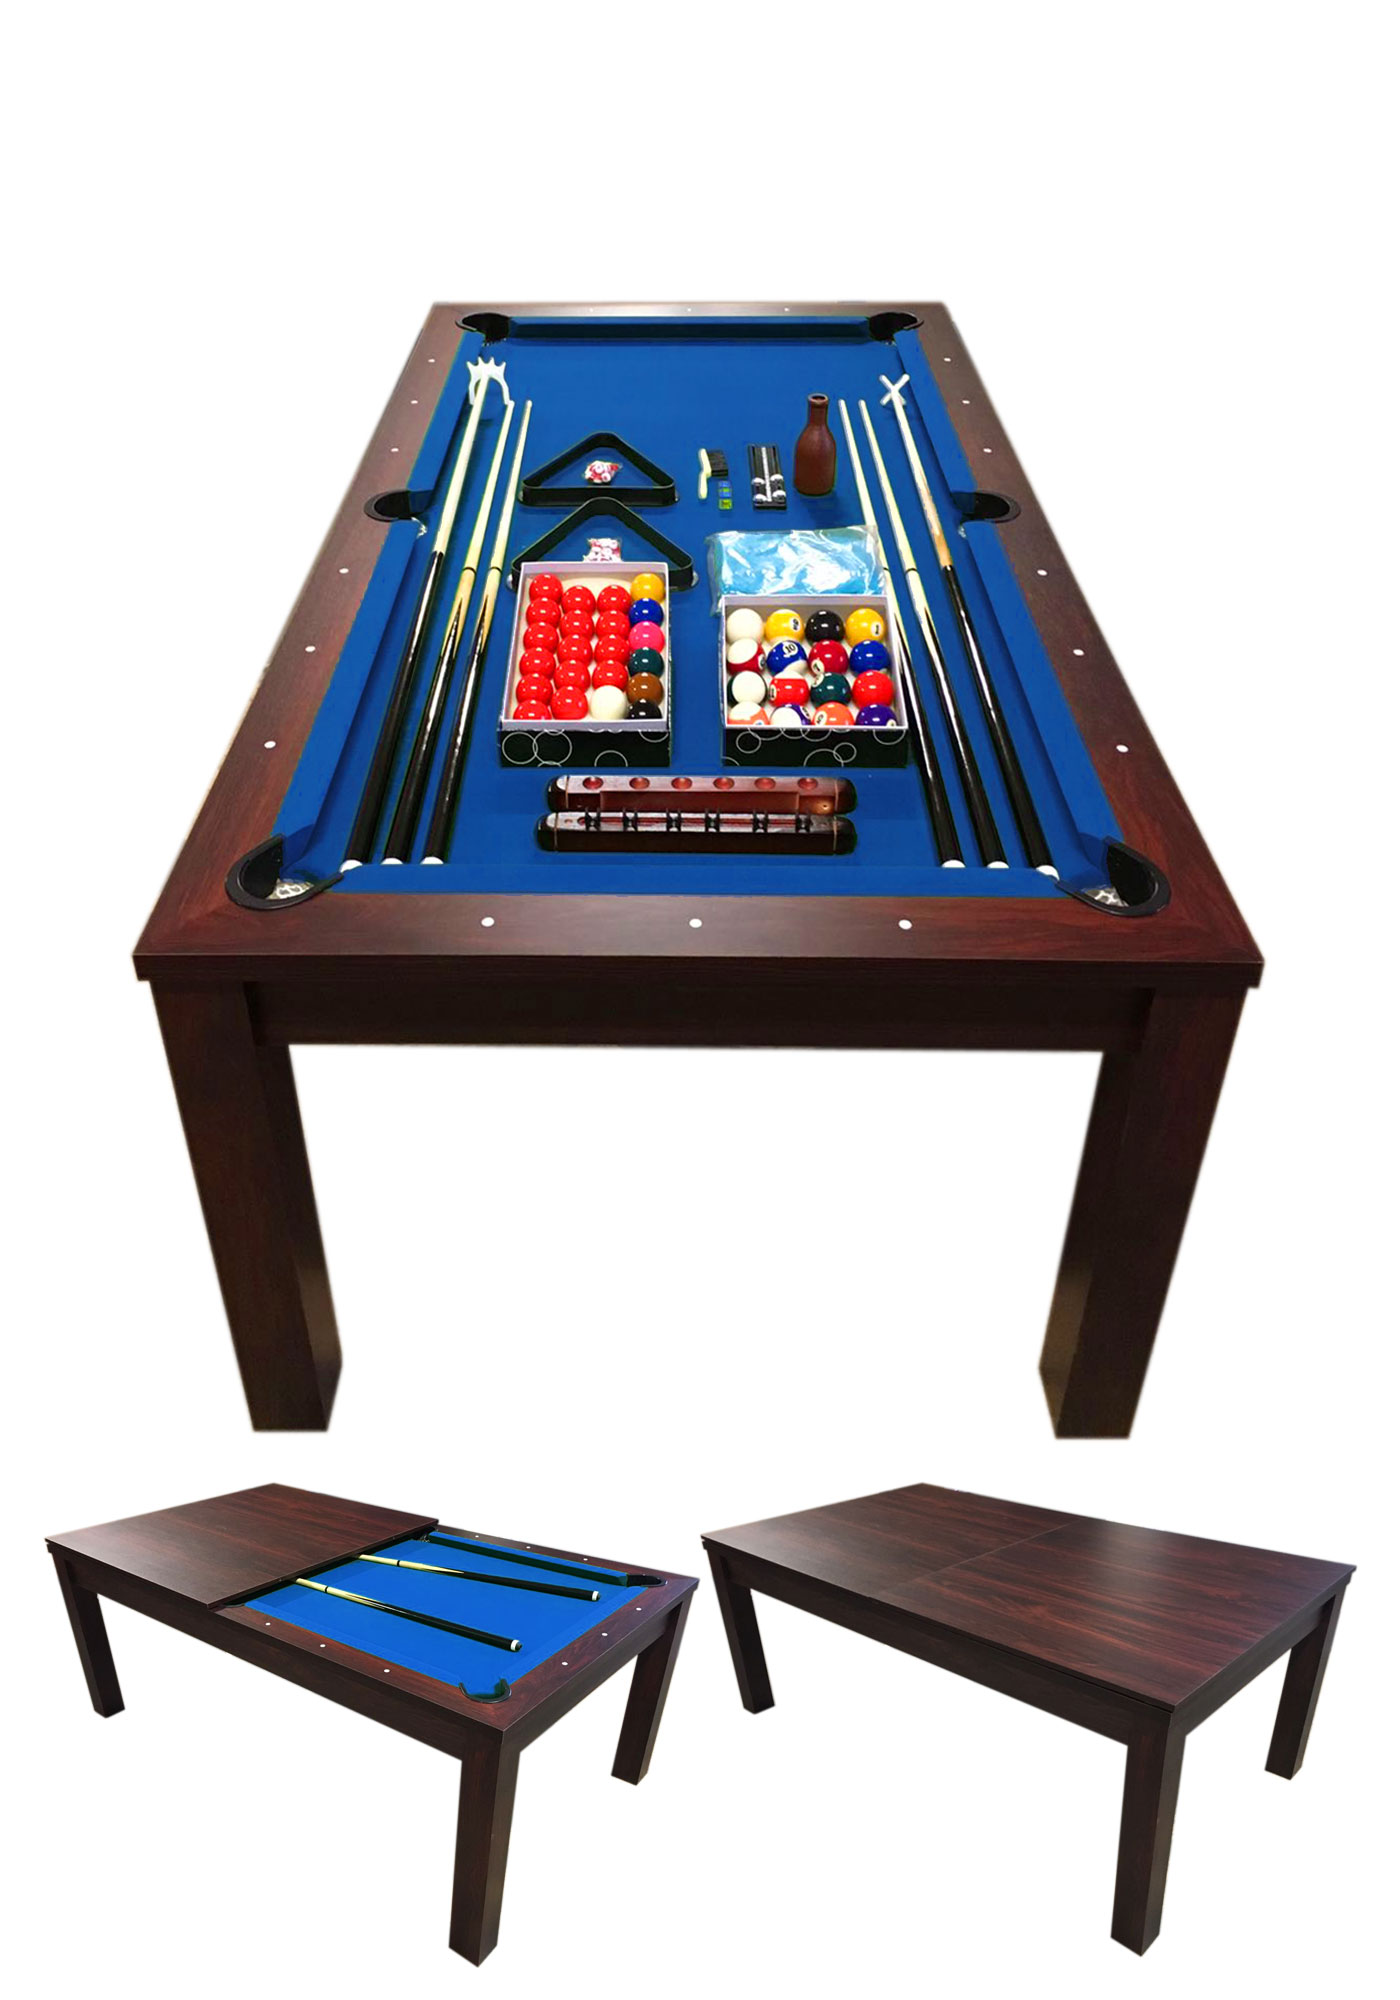 POOL TABLE 7′ FEET Blue-Sky-senzalogo